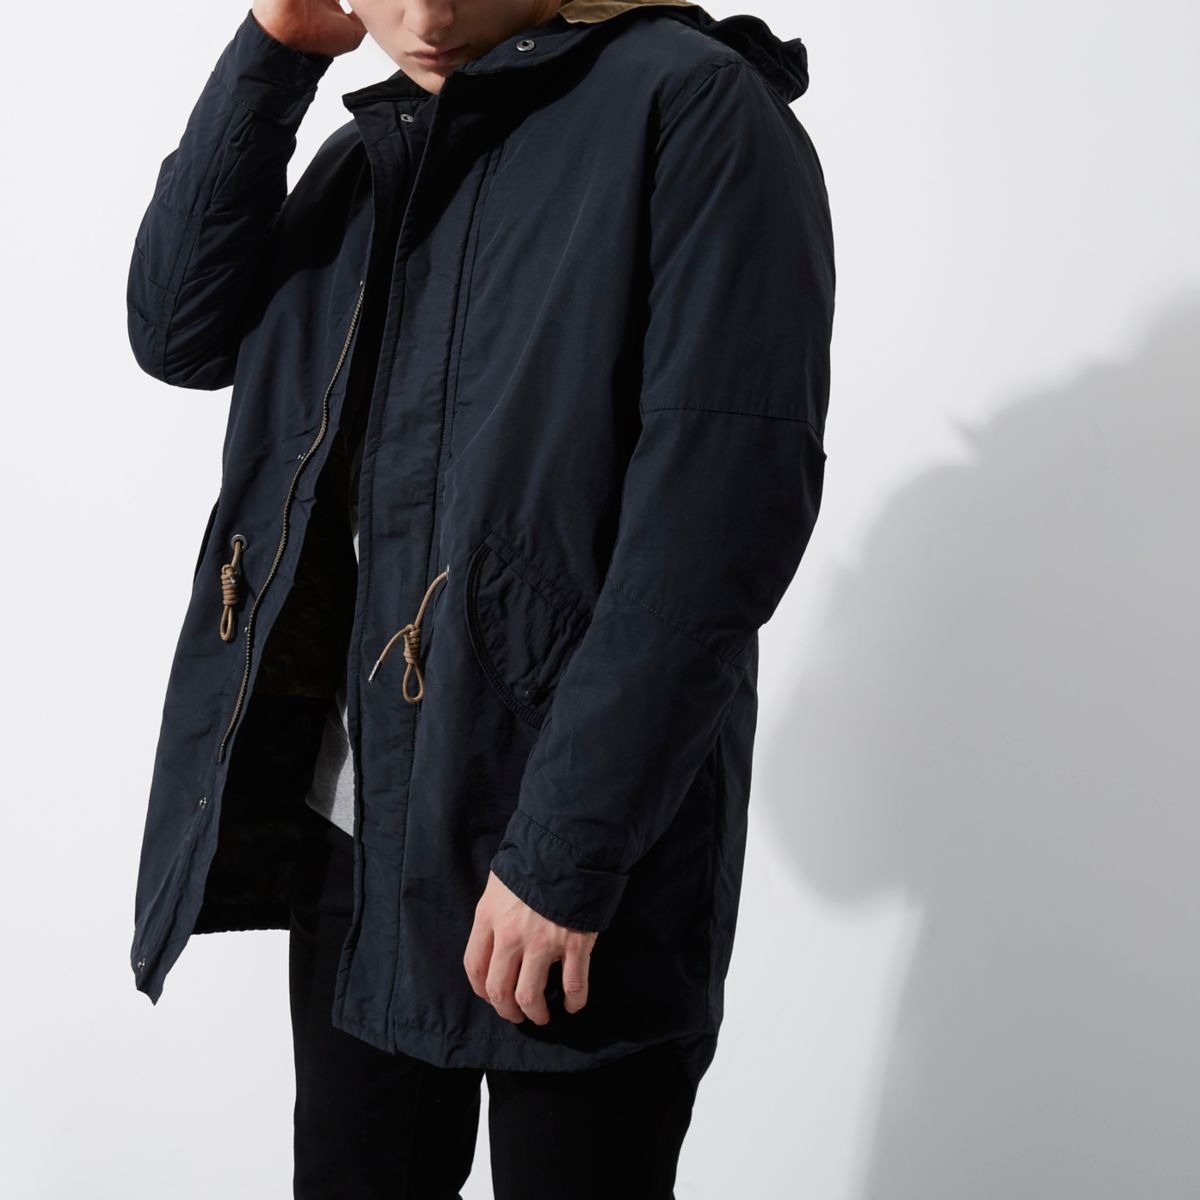 Navy Jack & Jones Vintage parka